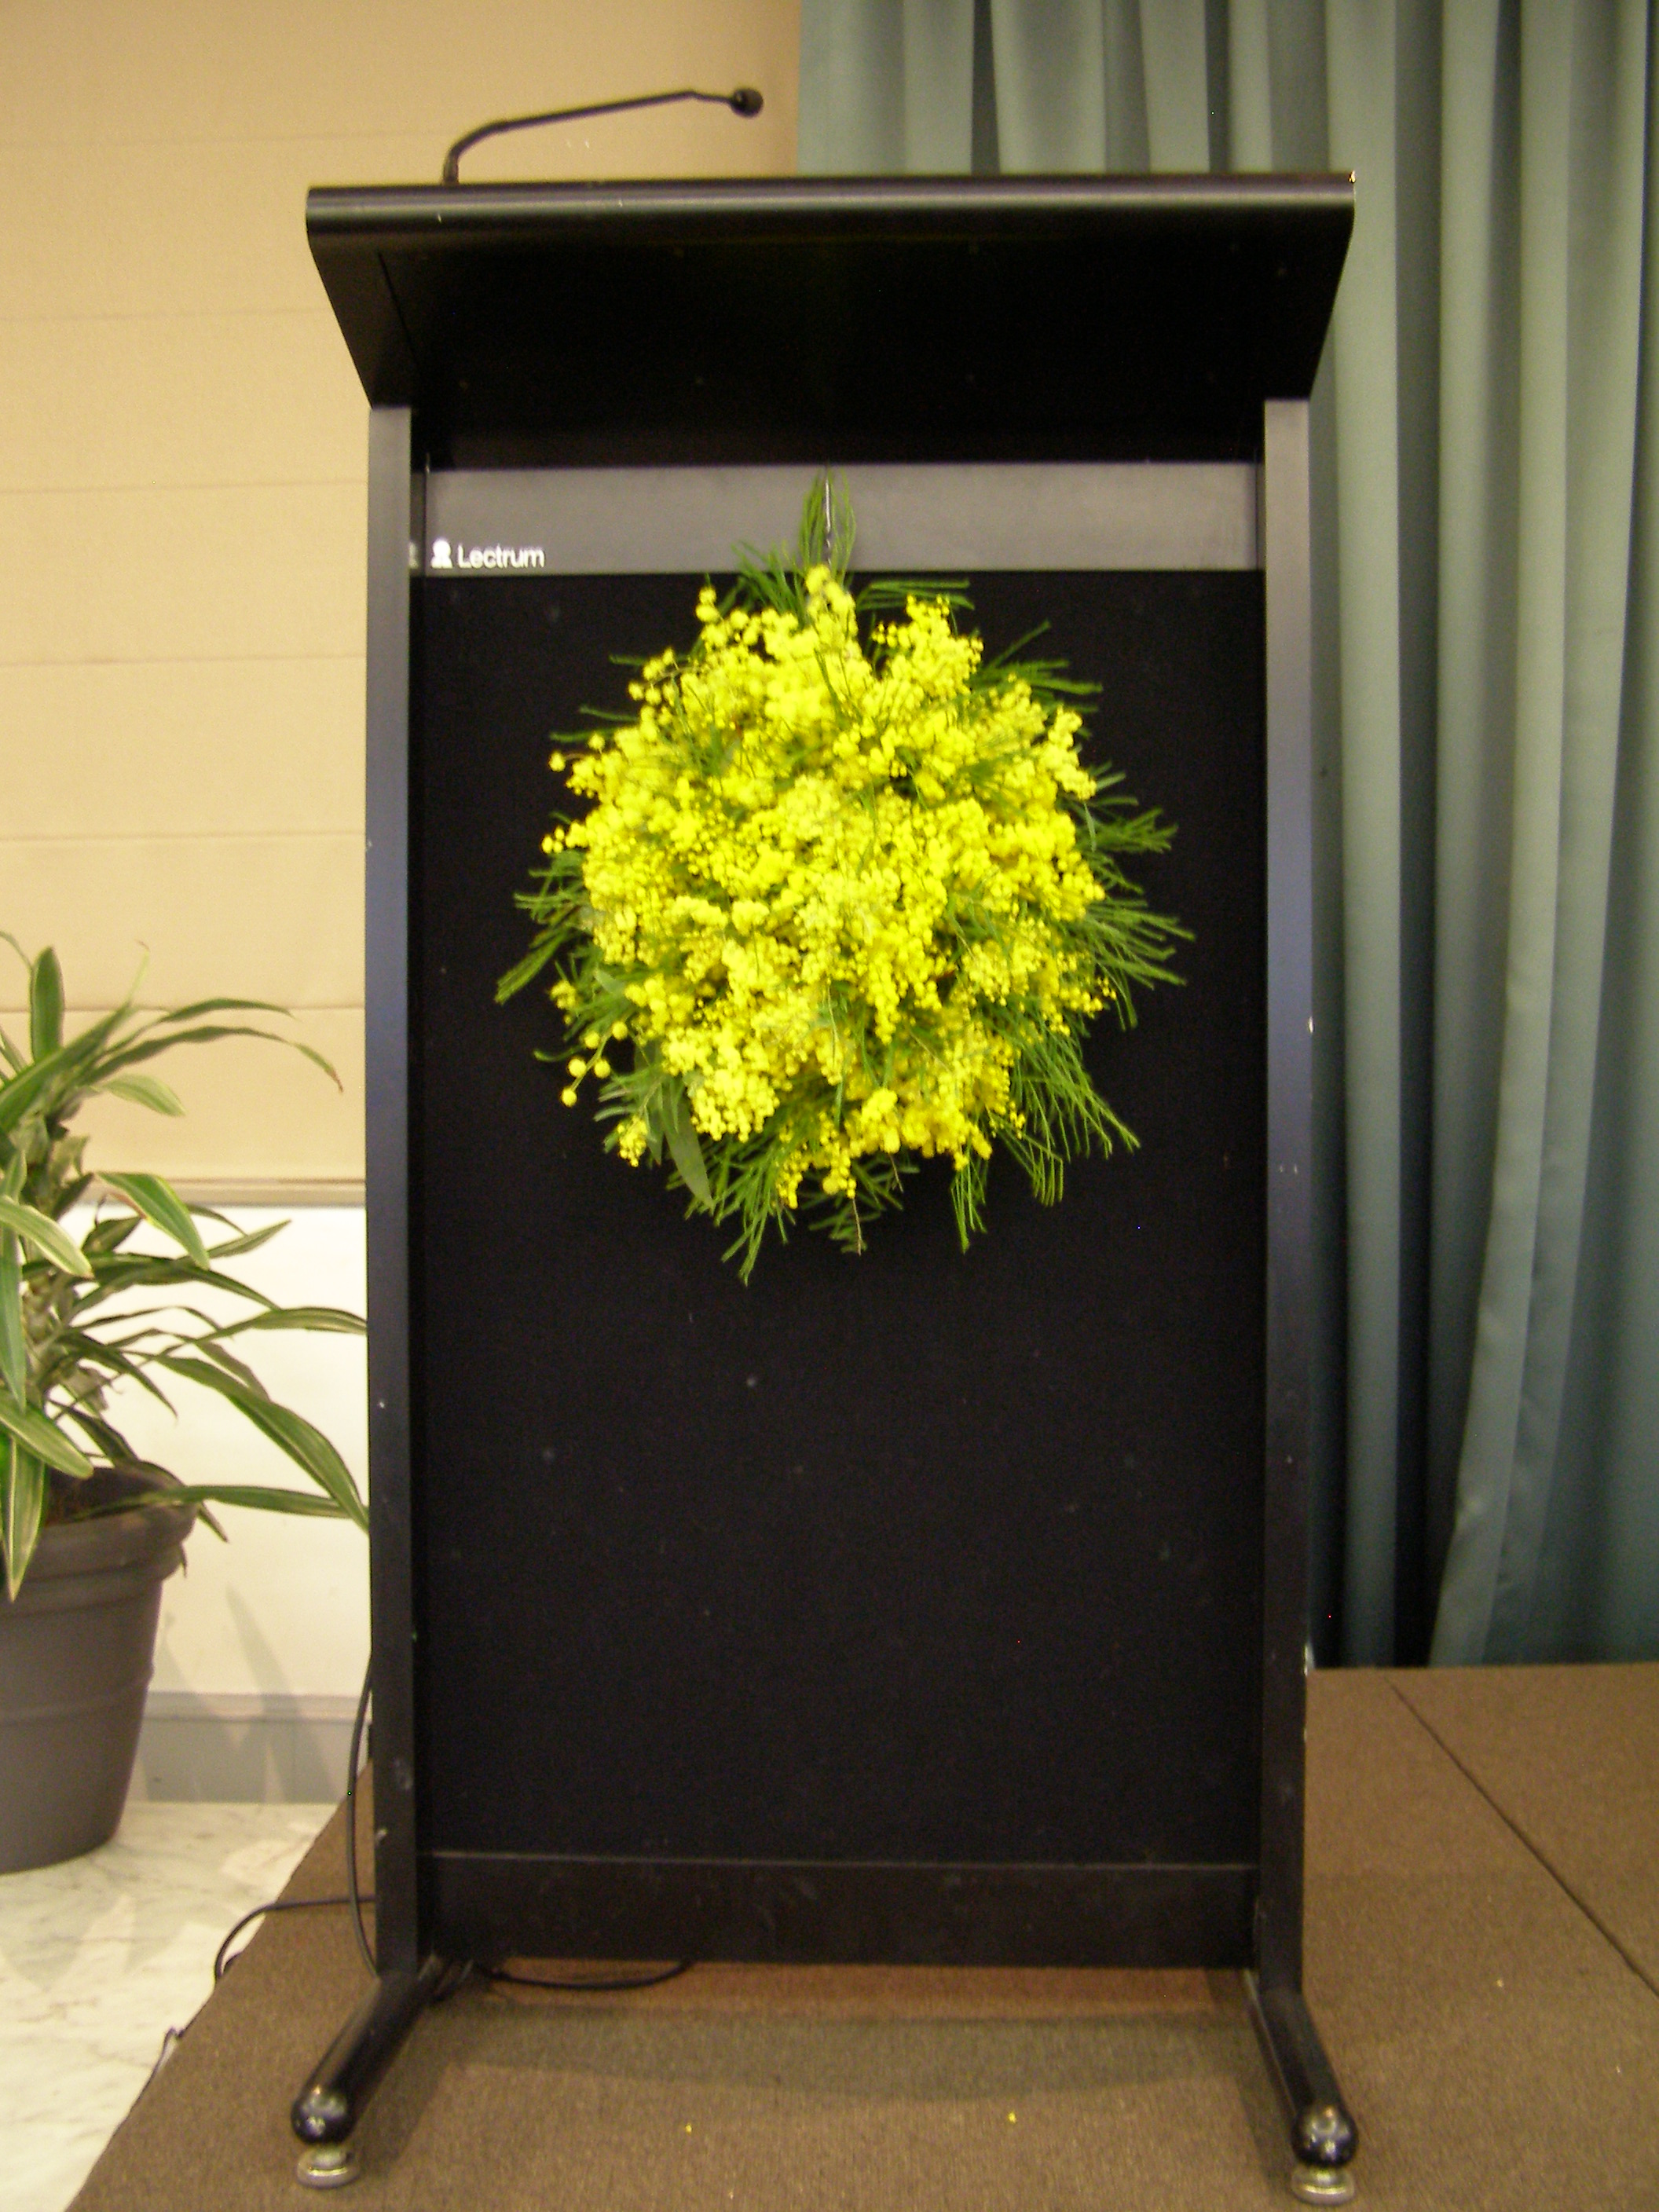 Lectern bouquet by Dawn Searle